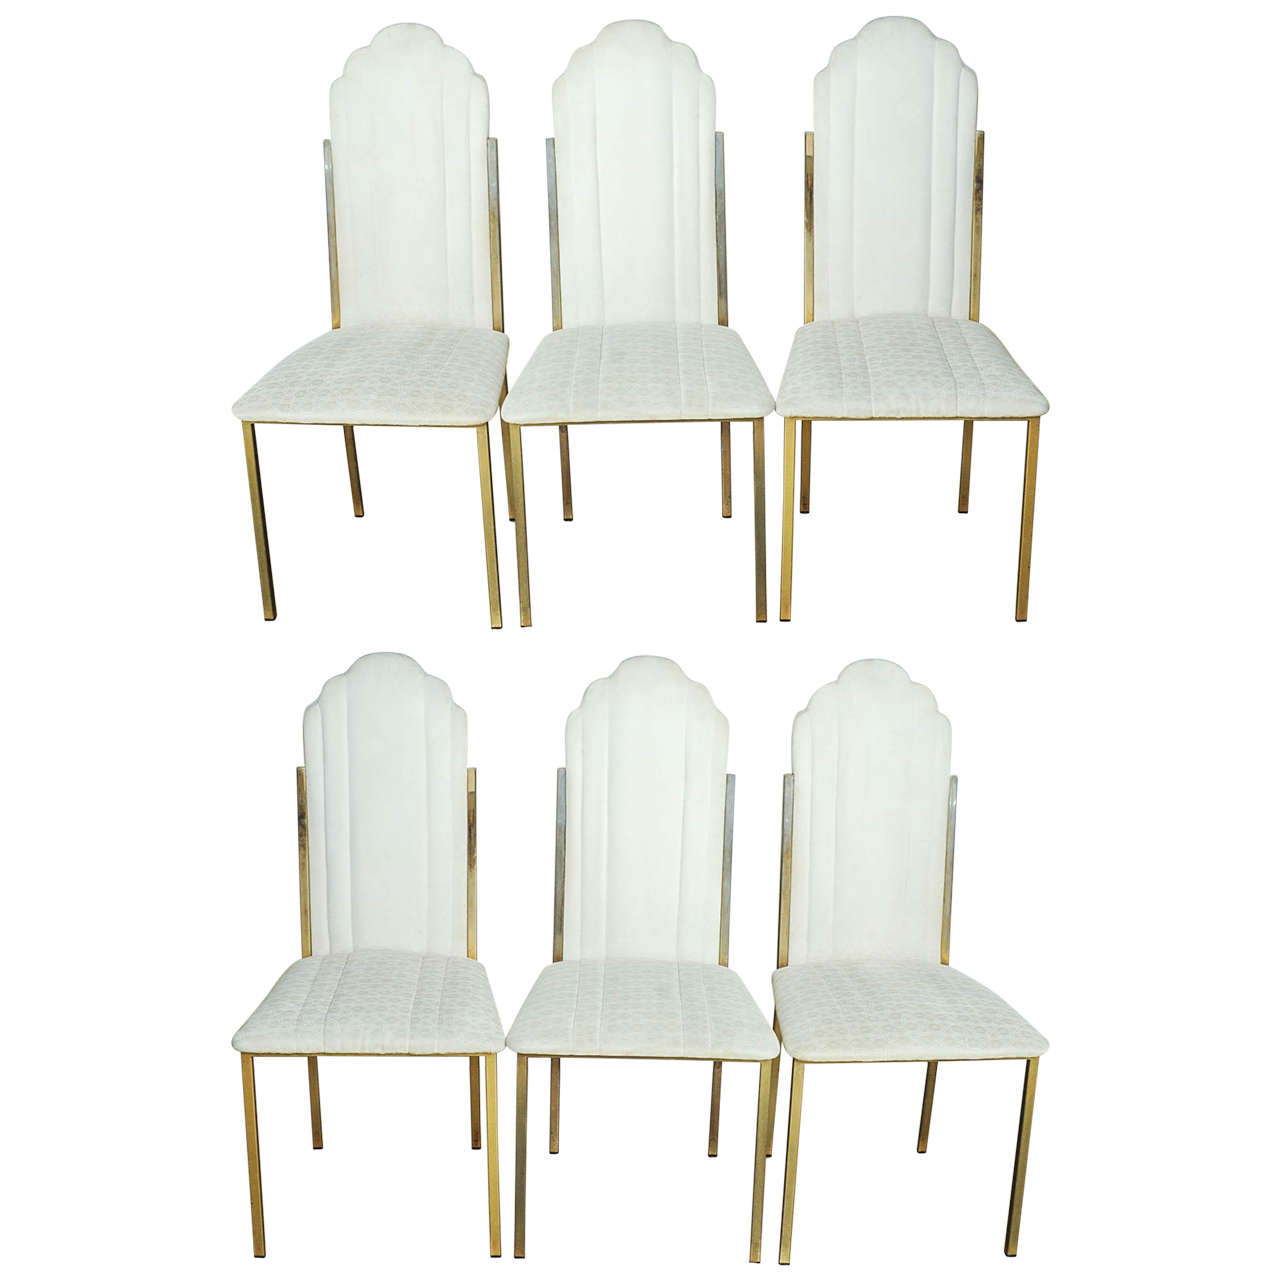 Set of Six Hollywood Regency Dining Chairs by Alain Delon for Maison Jansen  For Sale 1810fef53b